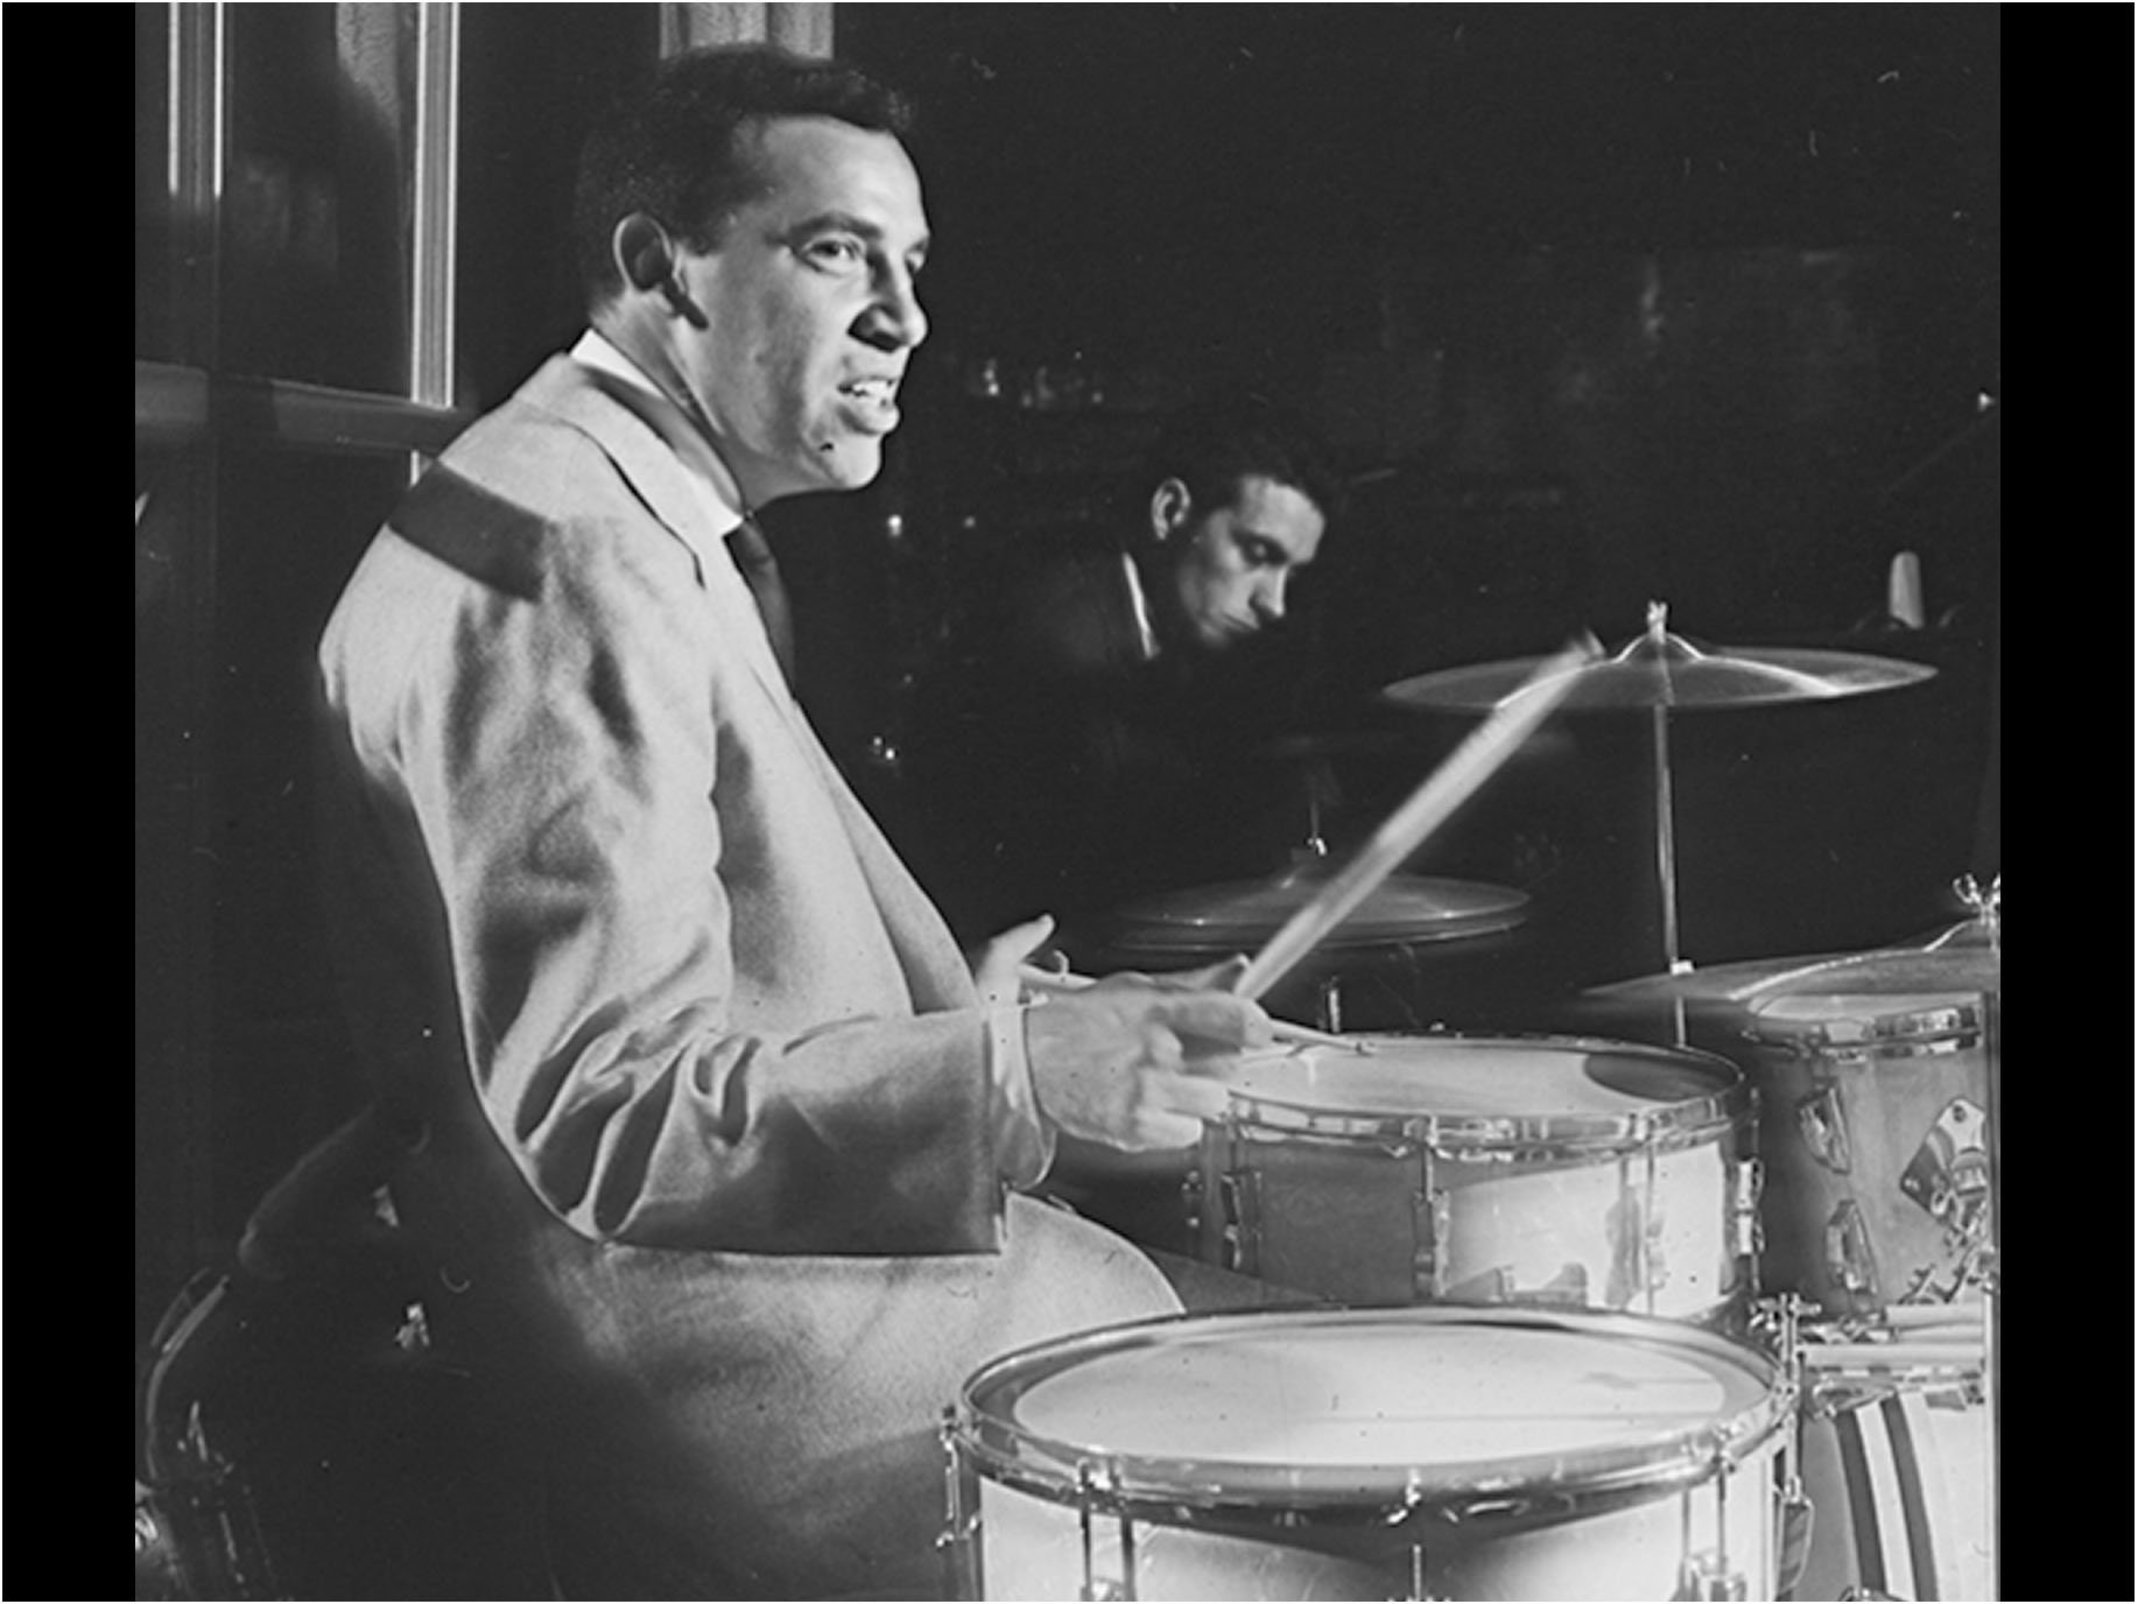 Buddy rich on drums